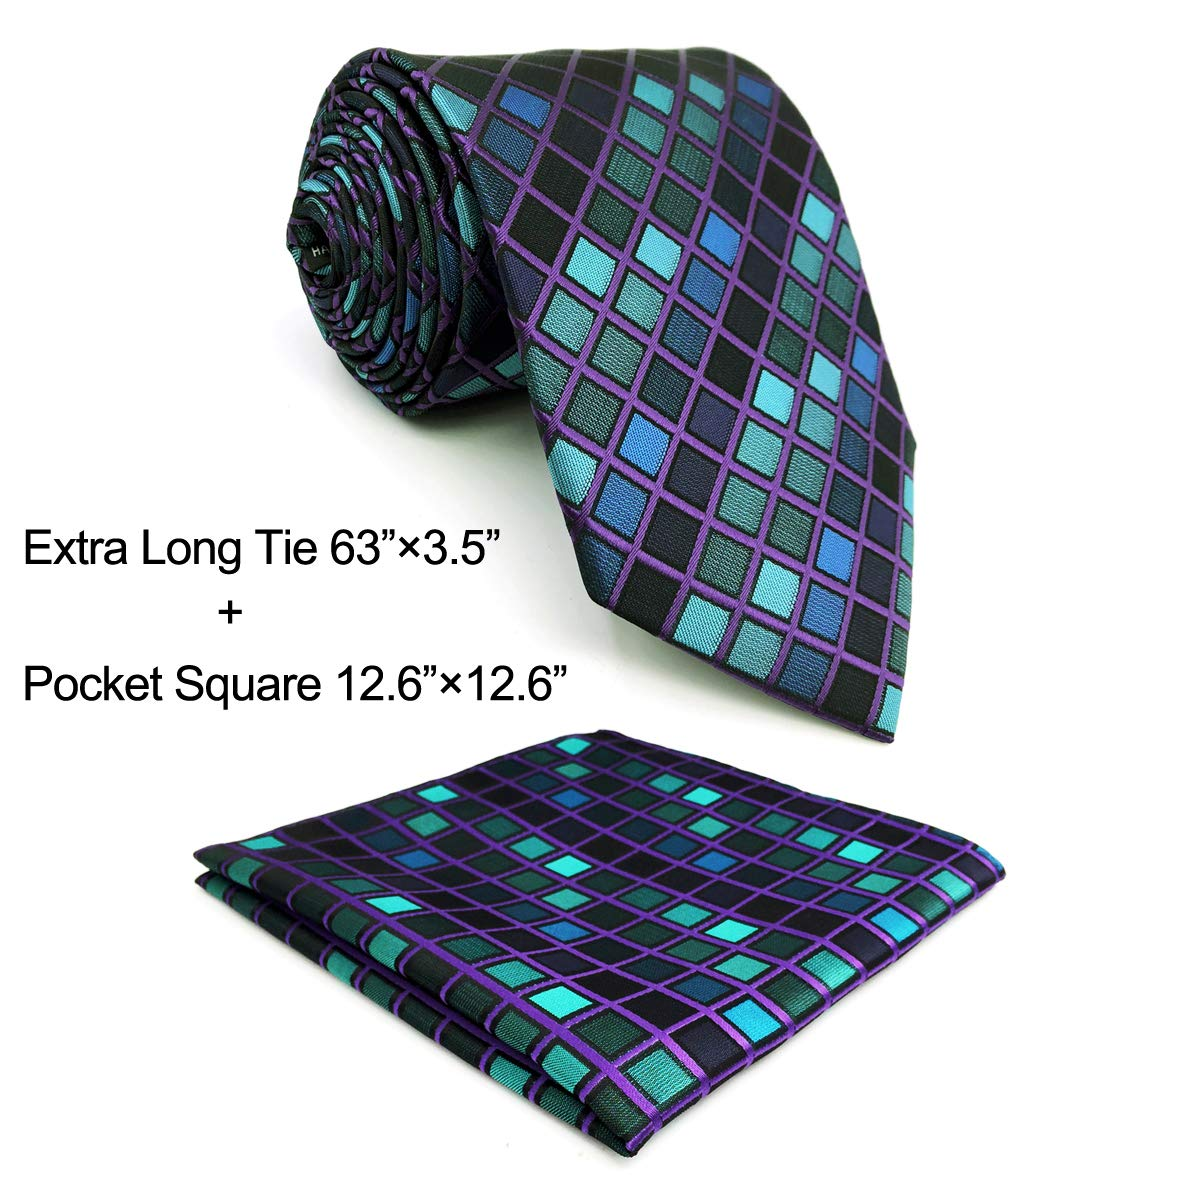 Shlax&Wing New Design Blue Checkers Mens Ties Neckties Set Business Suit Set Shlax & Wing D10-H